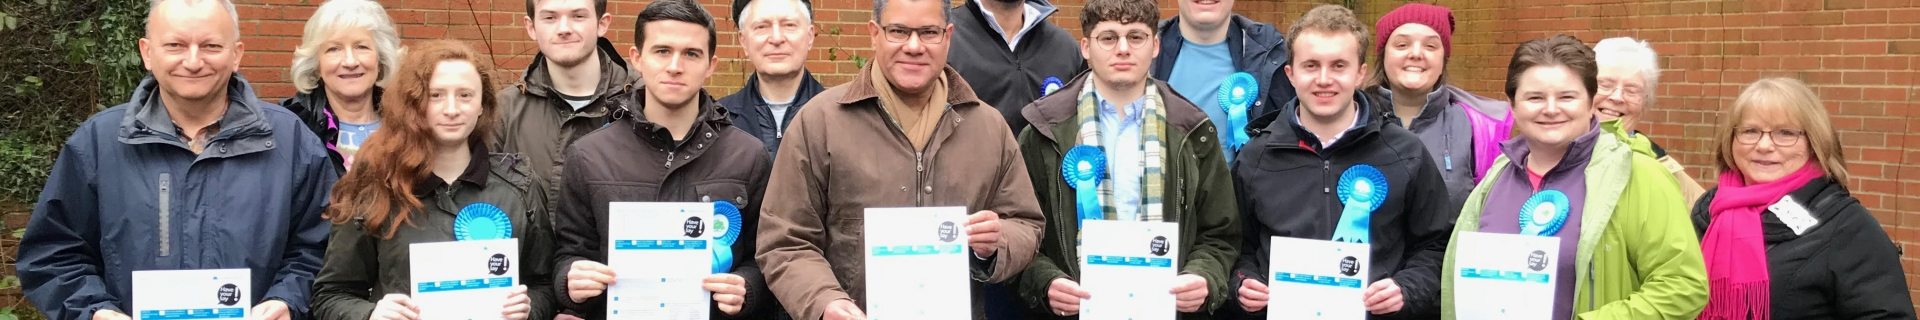 Banner image for Reading West Conservatives